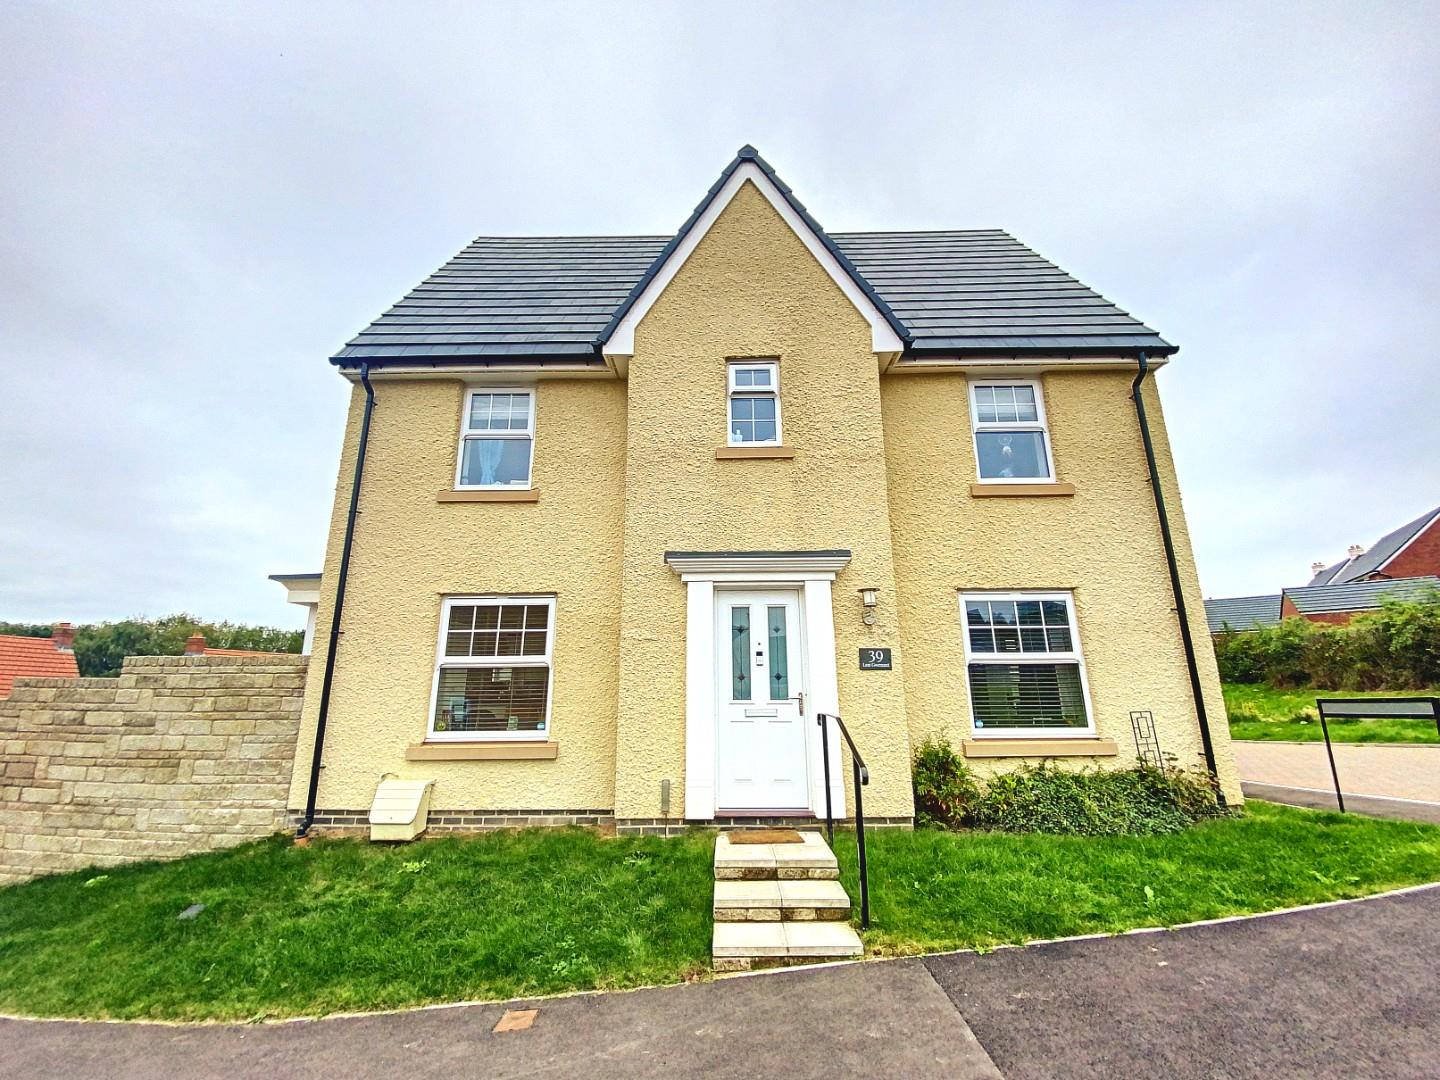 3 bed detached house to rent in Lon Gwenant, Cwmbran, NP44